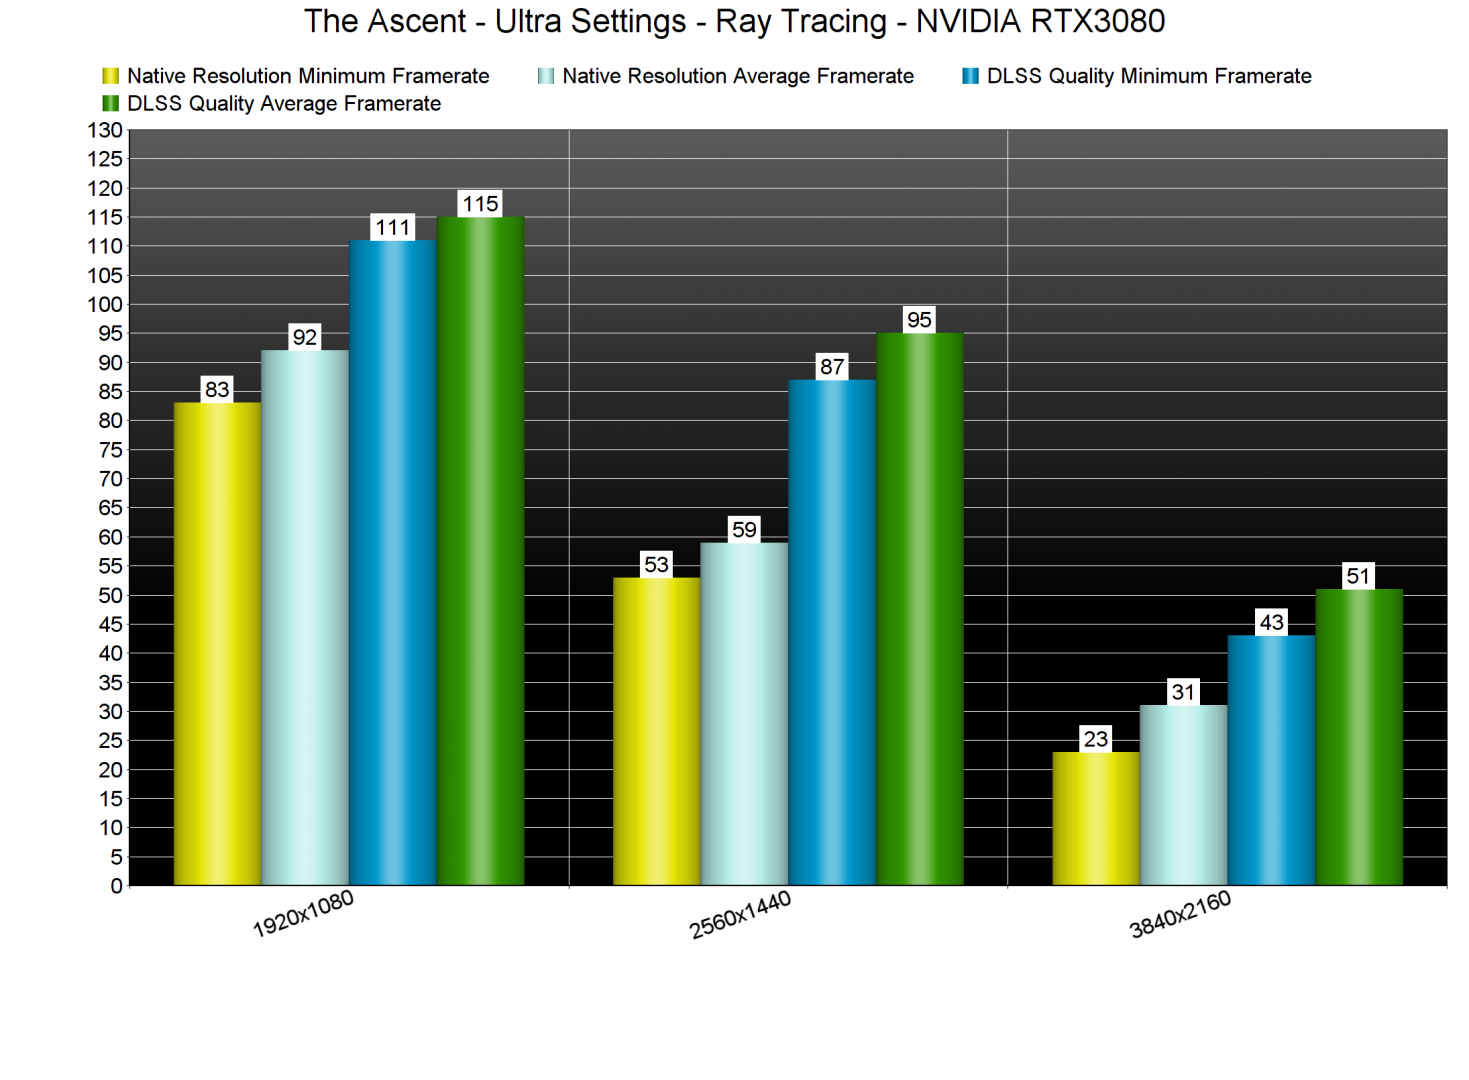 The Ascent Ray Tracing benchmarks